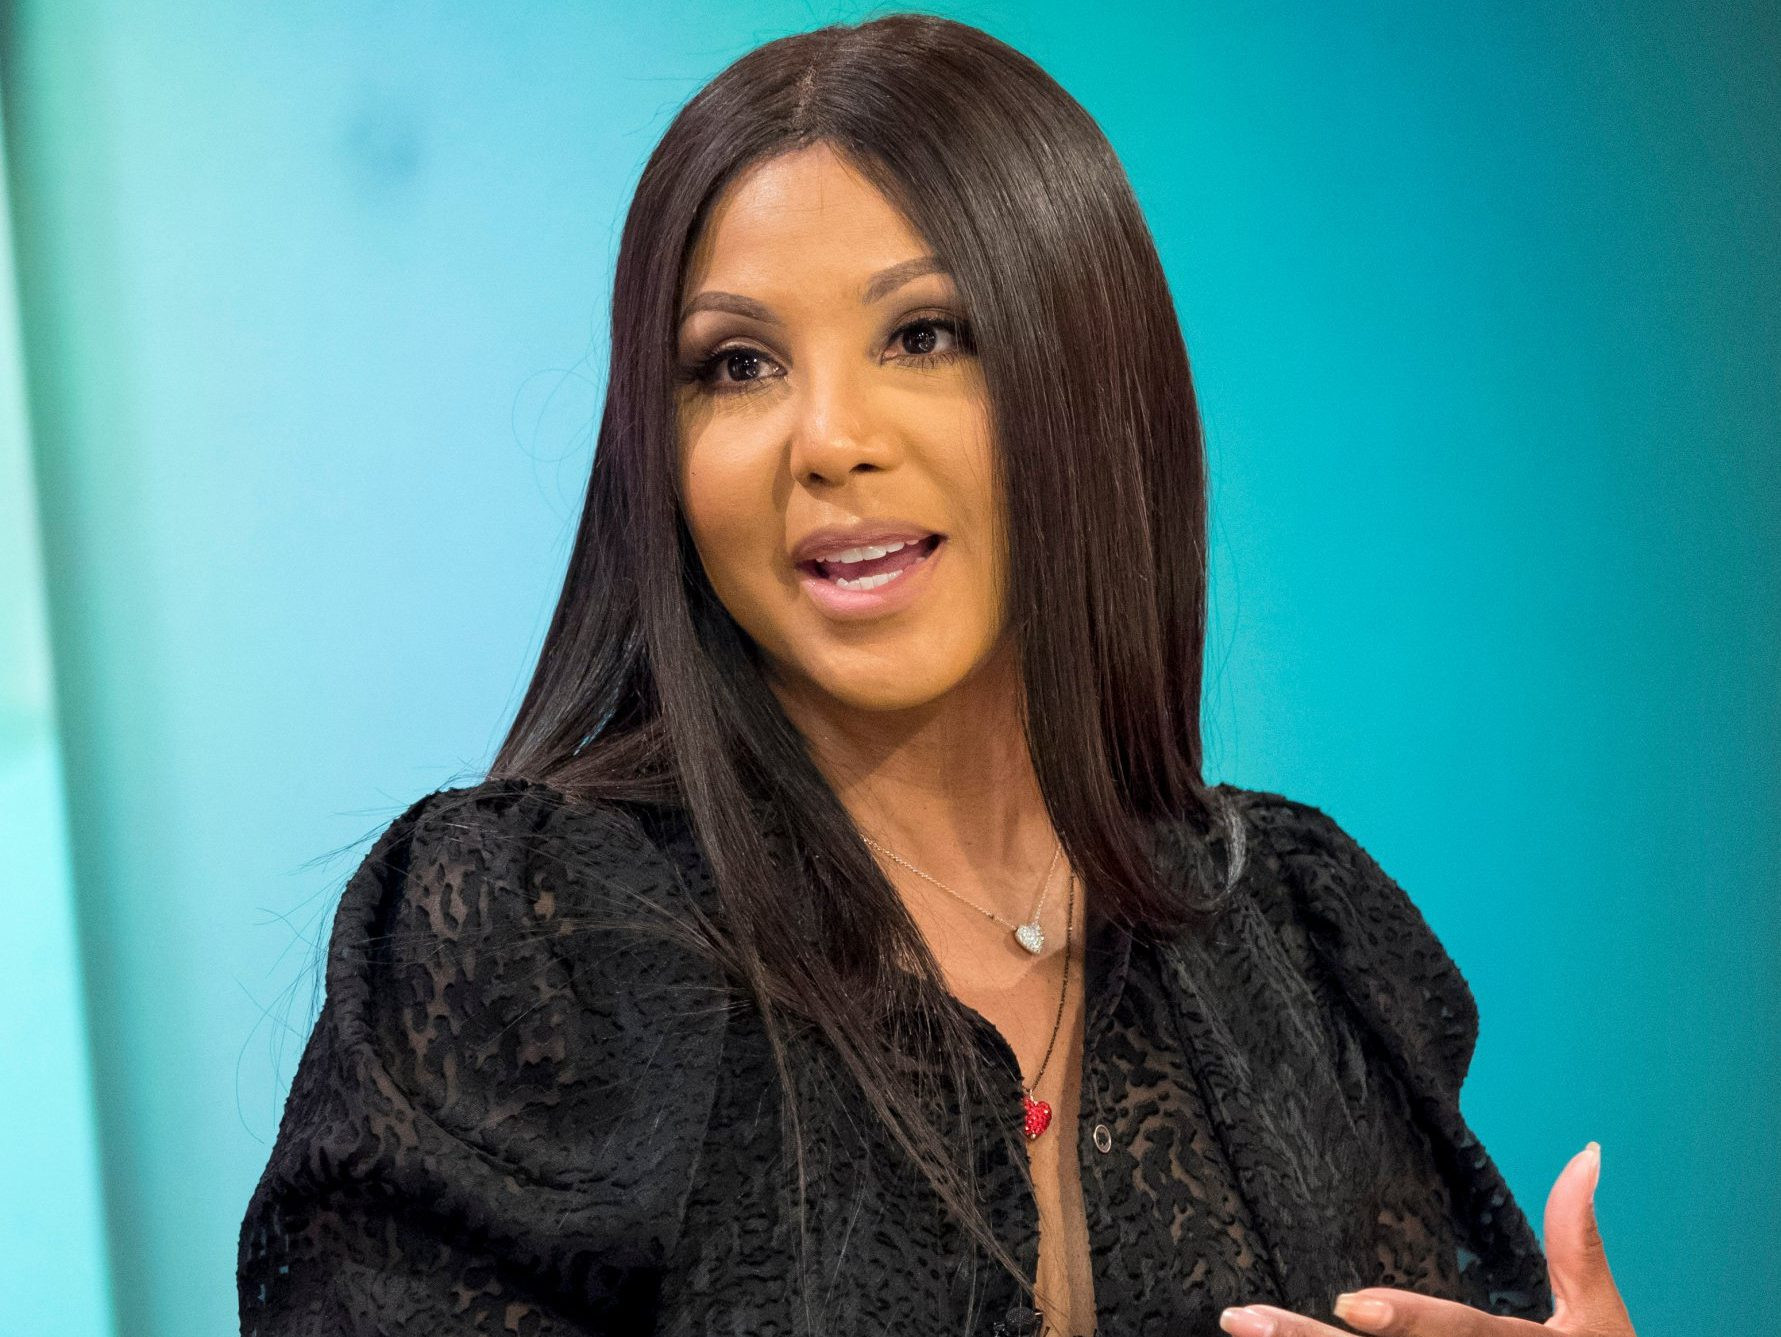 toni-braxton-celebrates-a-musical-achievement-check-out-the-video-she-shared